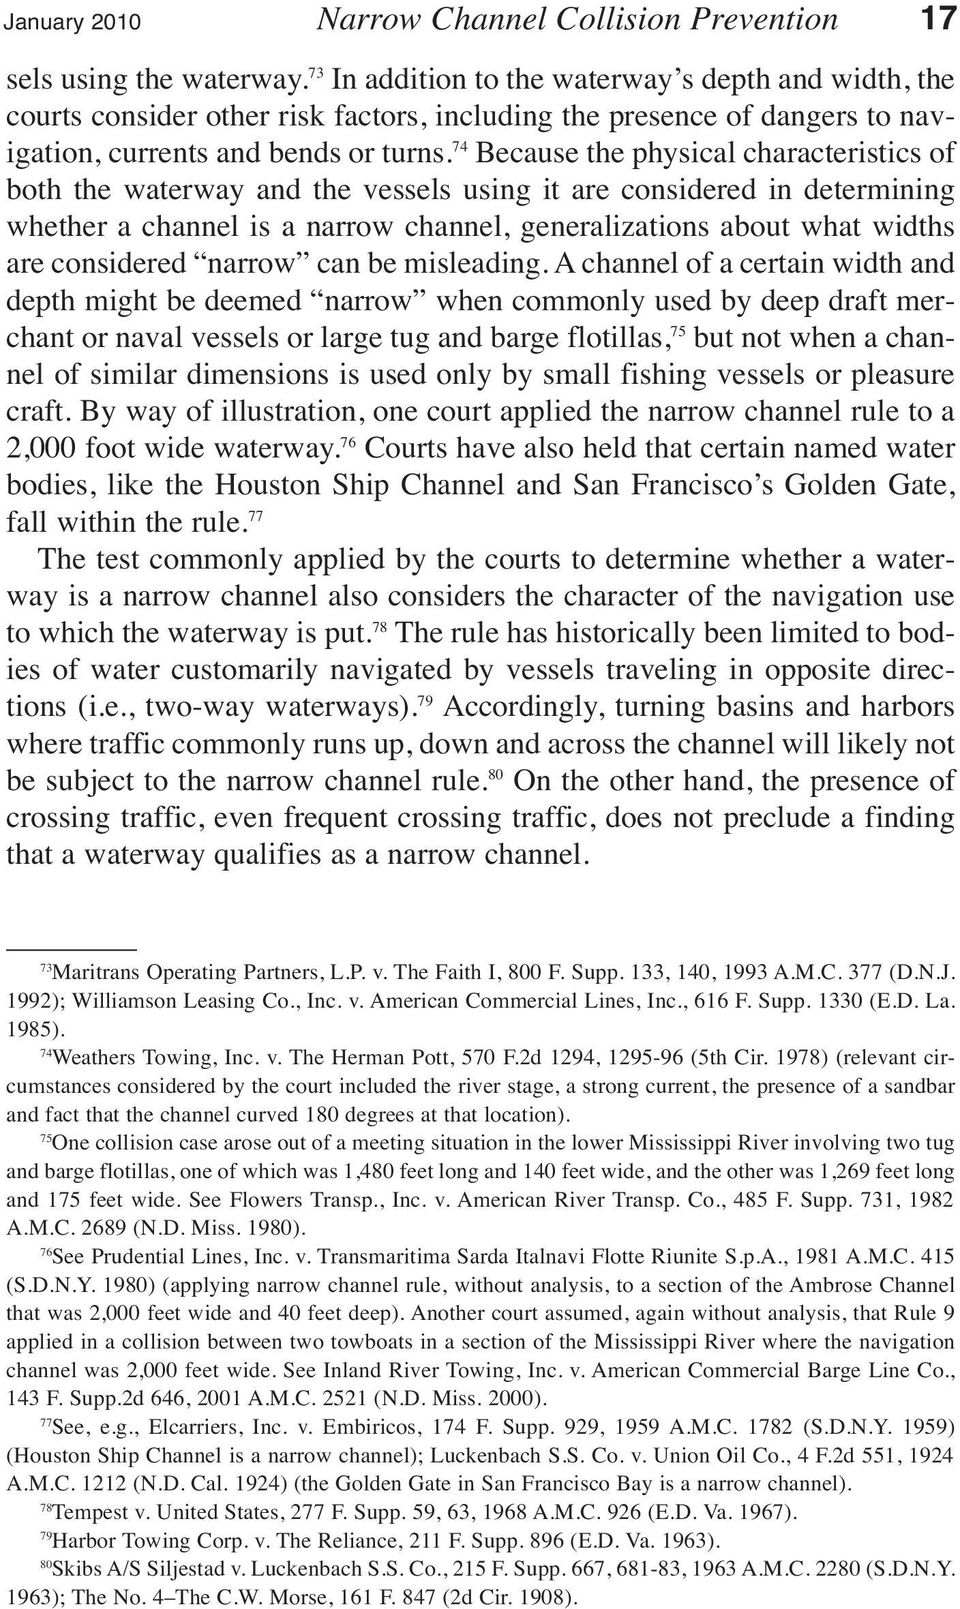 74 Because the physical characteristics of both the waterway and the vessels using it are considered in determining whether a channel is a narrow channel, generalizations about what widths are